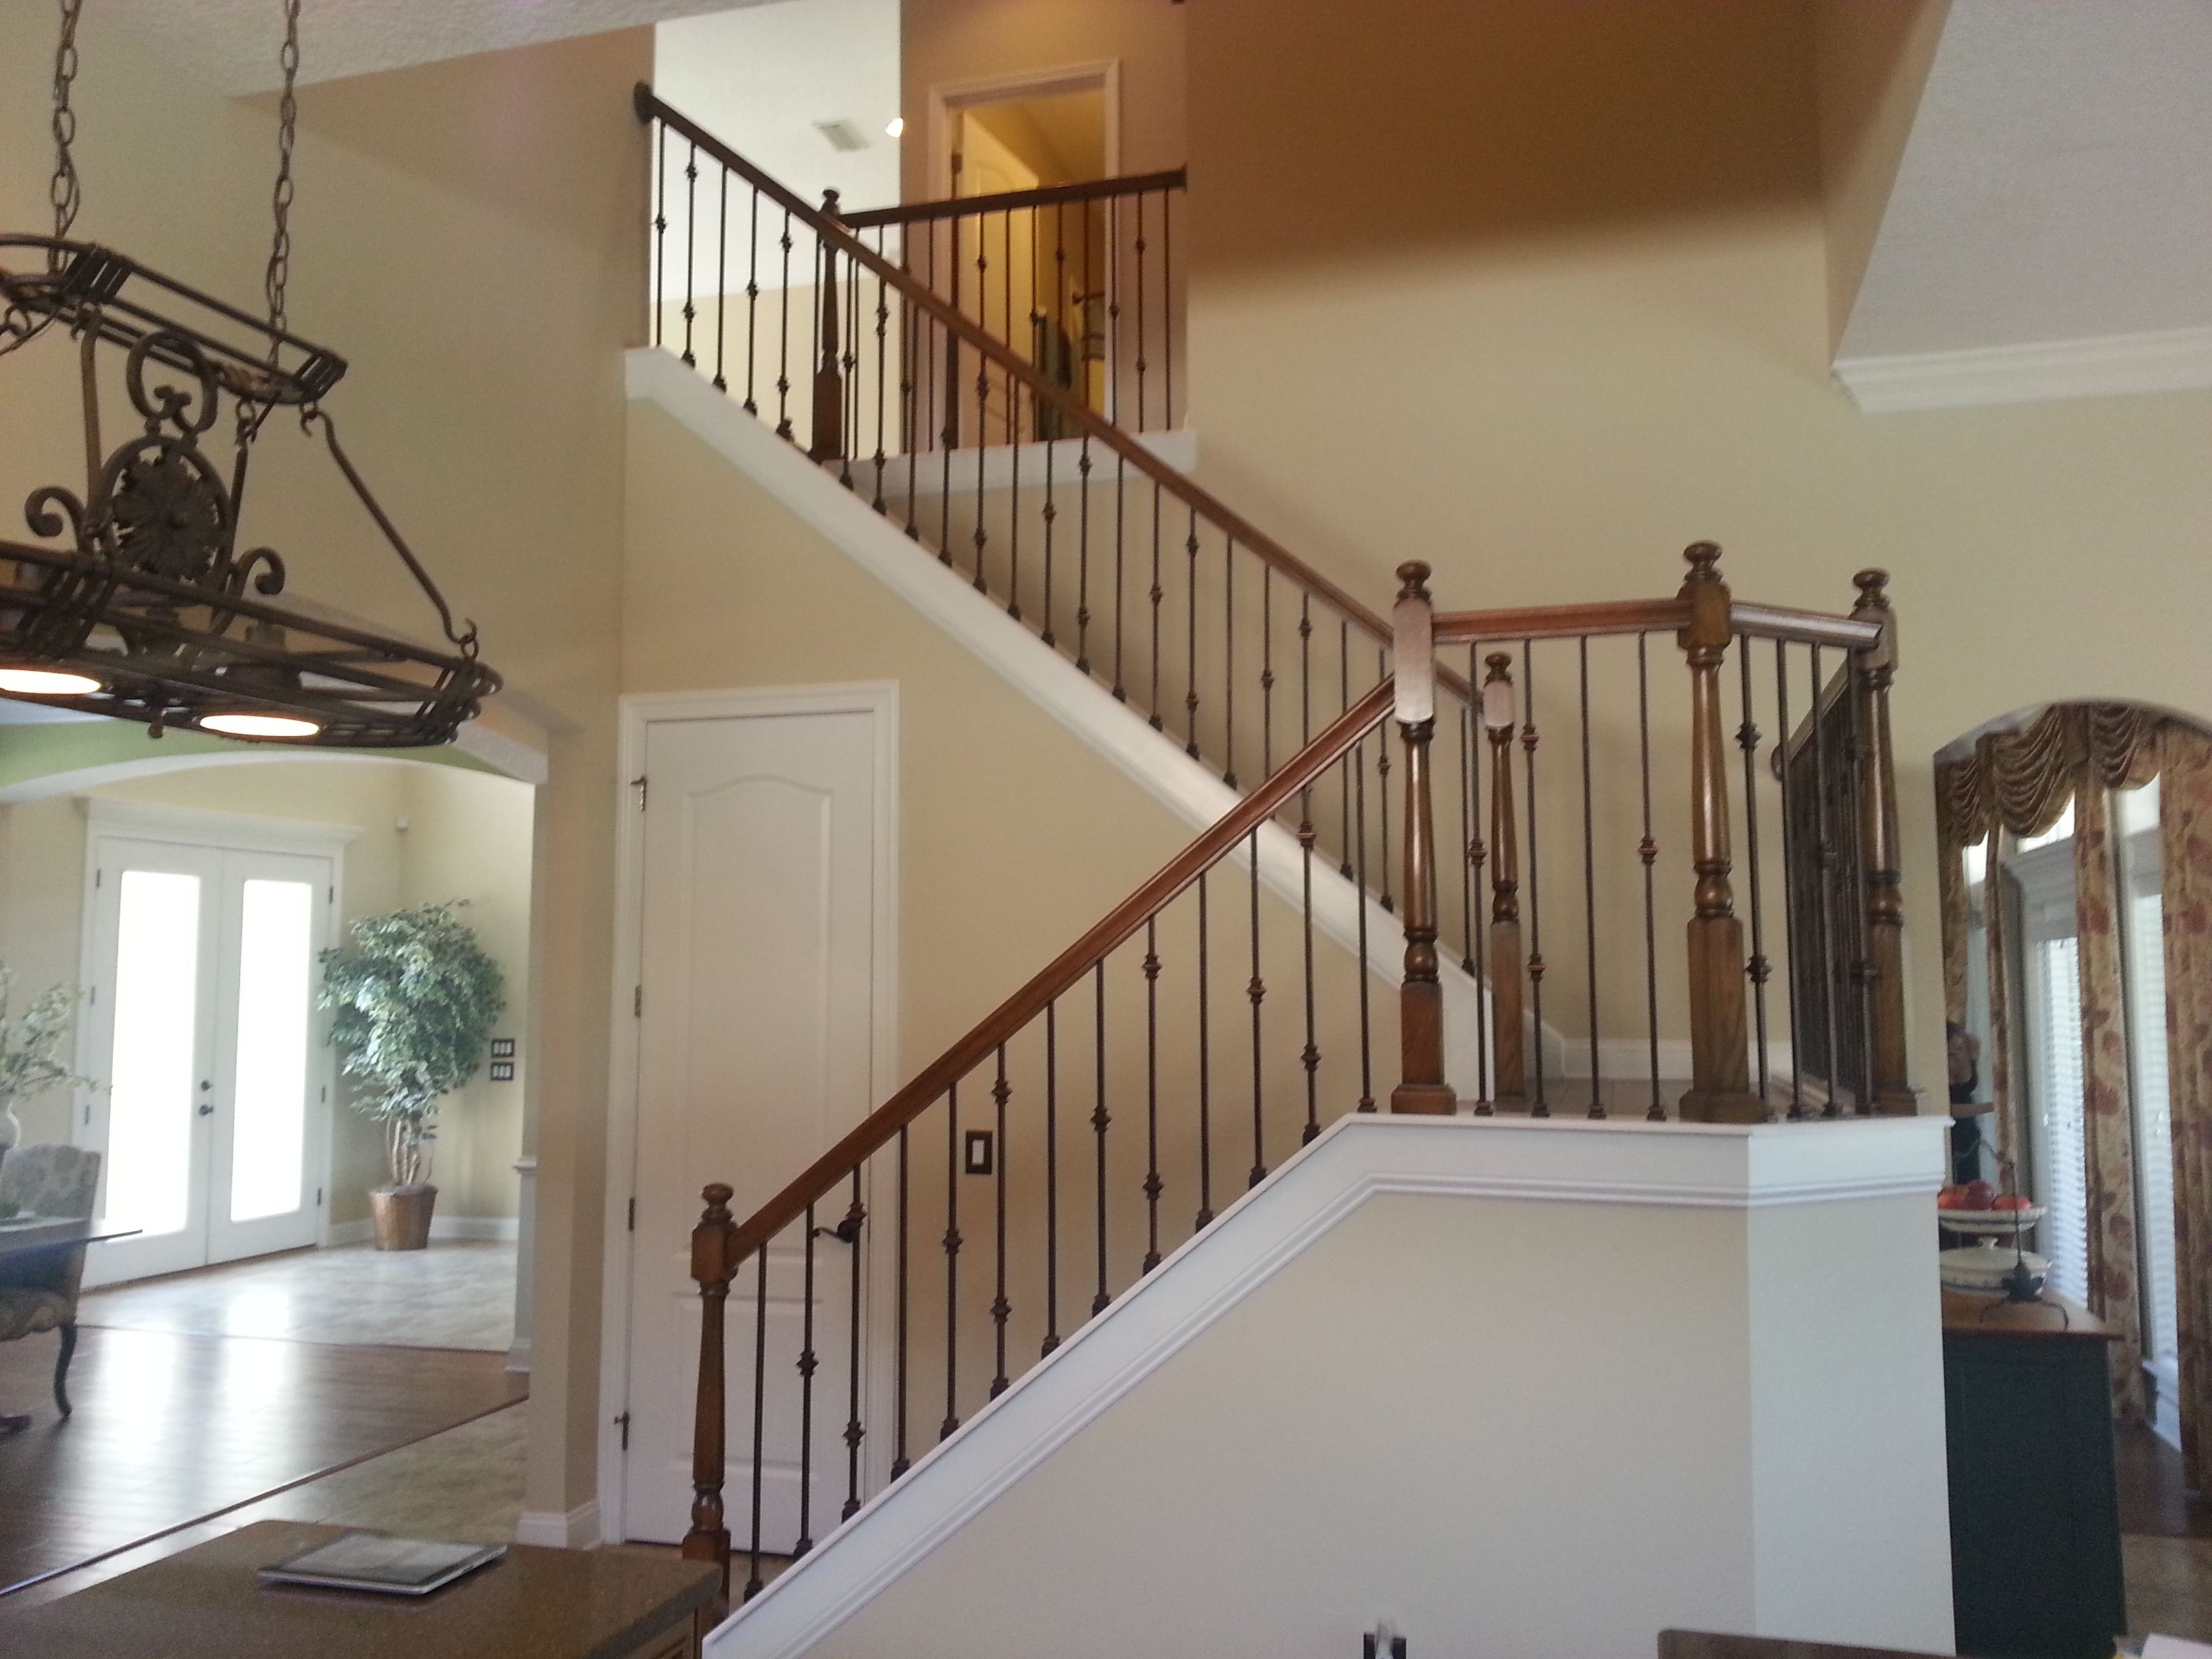 Awesome Rod Iron Stair Railing Part - 14: Wrought Iron Stair Railing Styles For Trendy Staircase Ideas: Stunning Wrought  Iron Stair Railing With